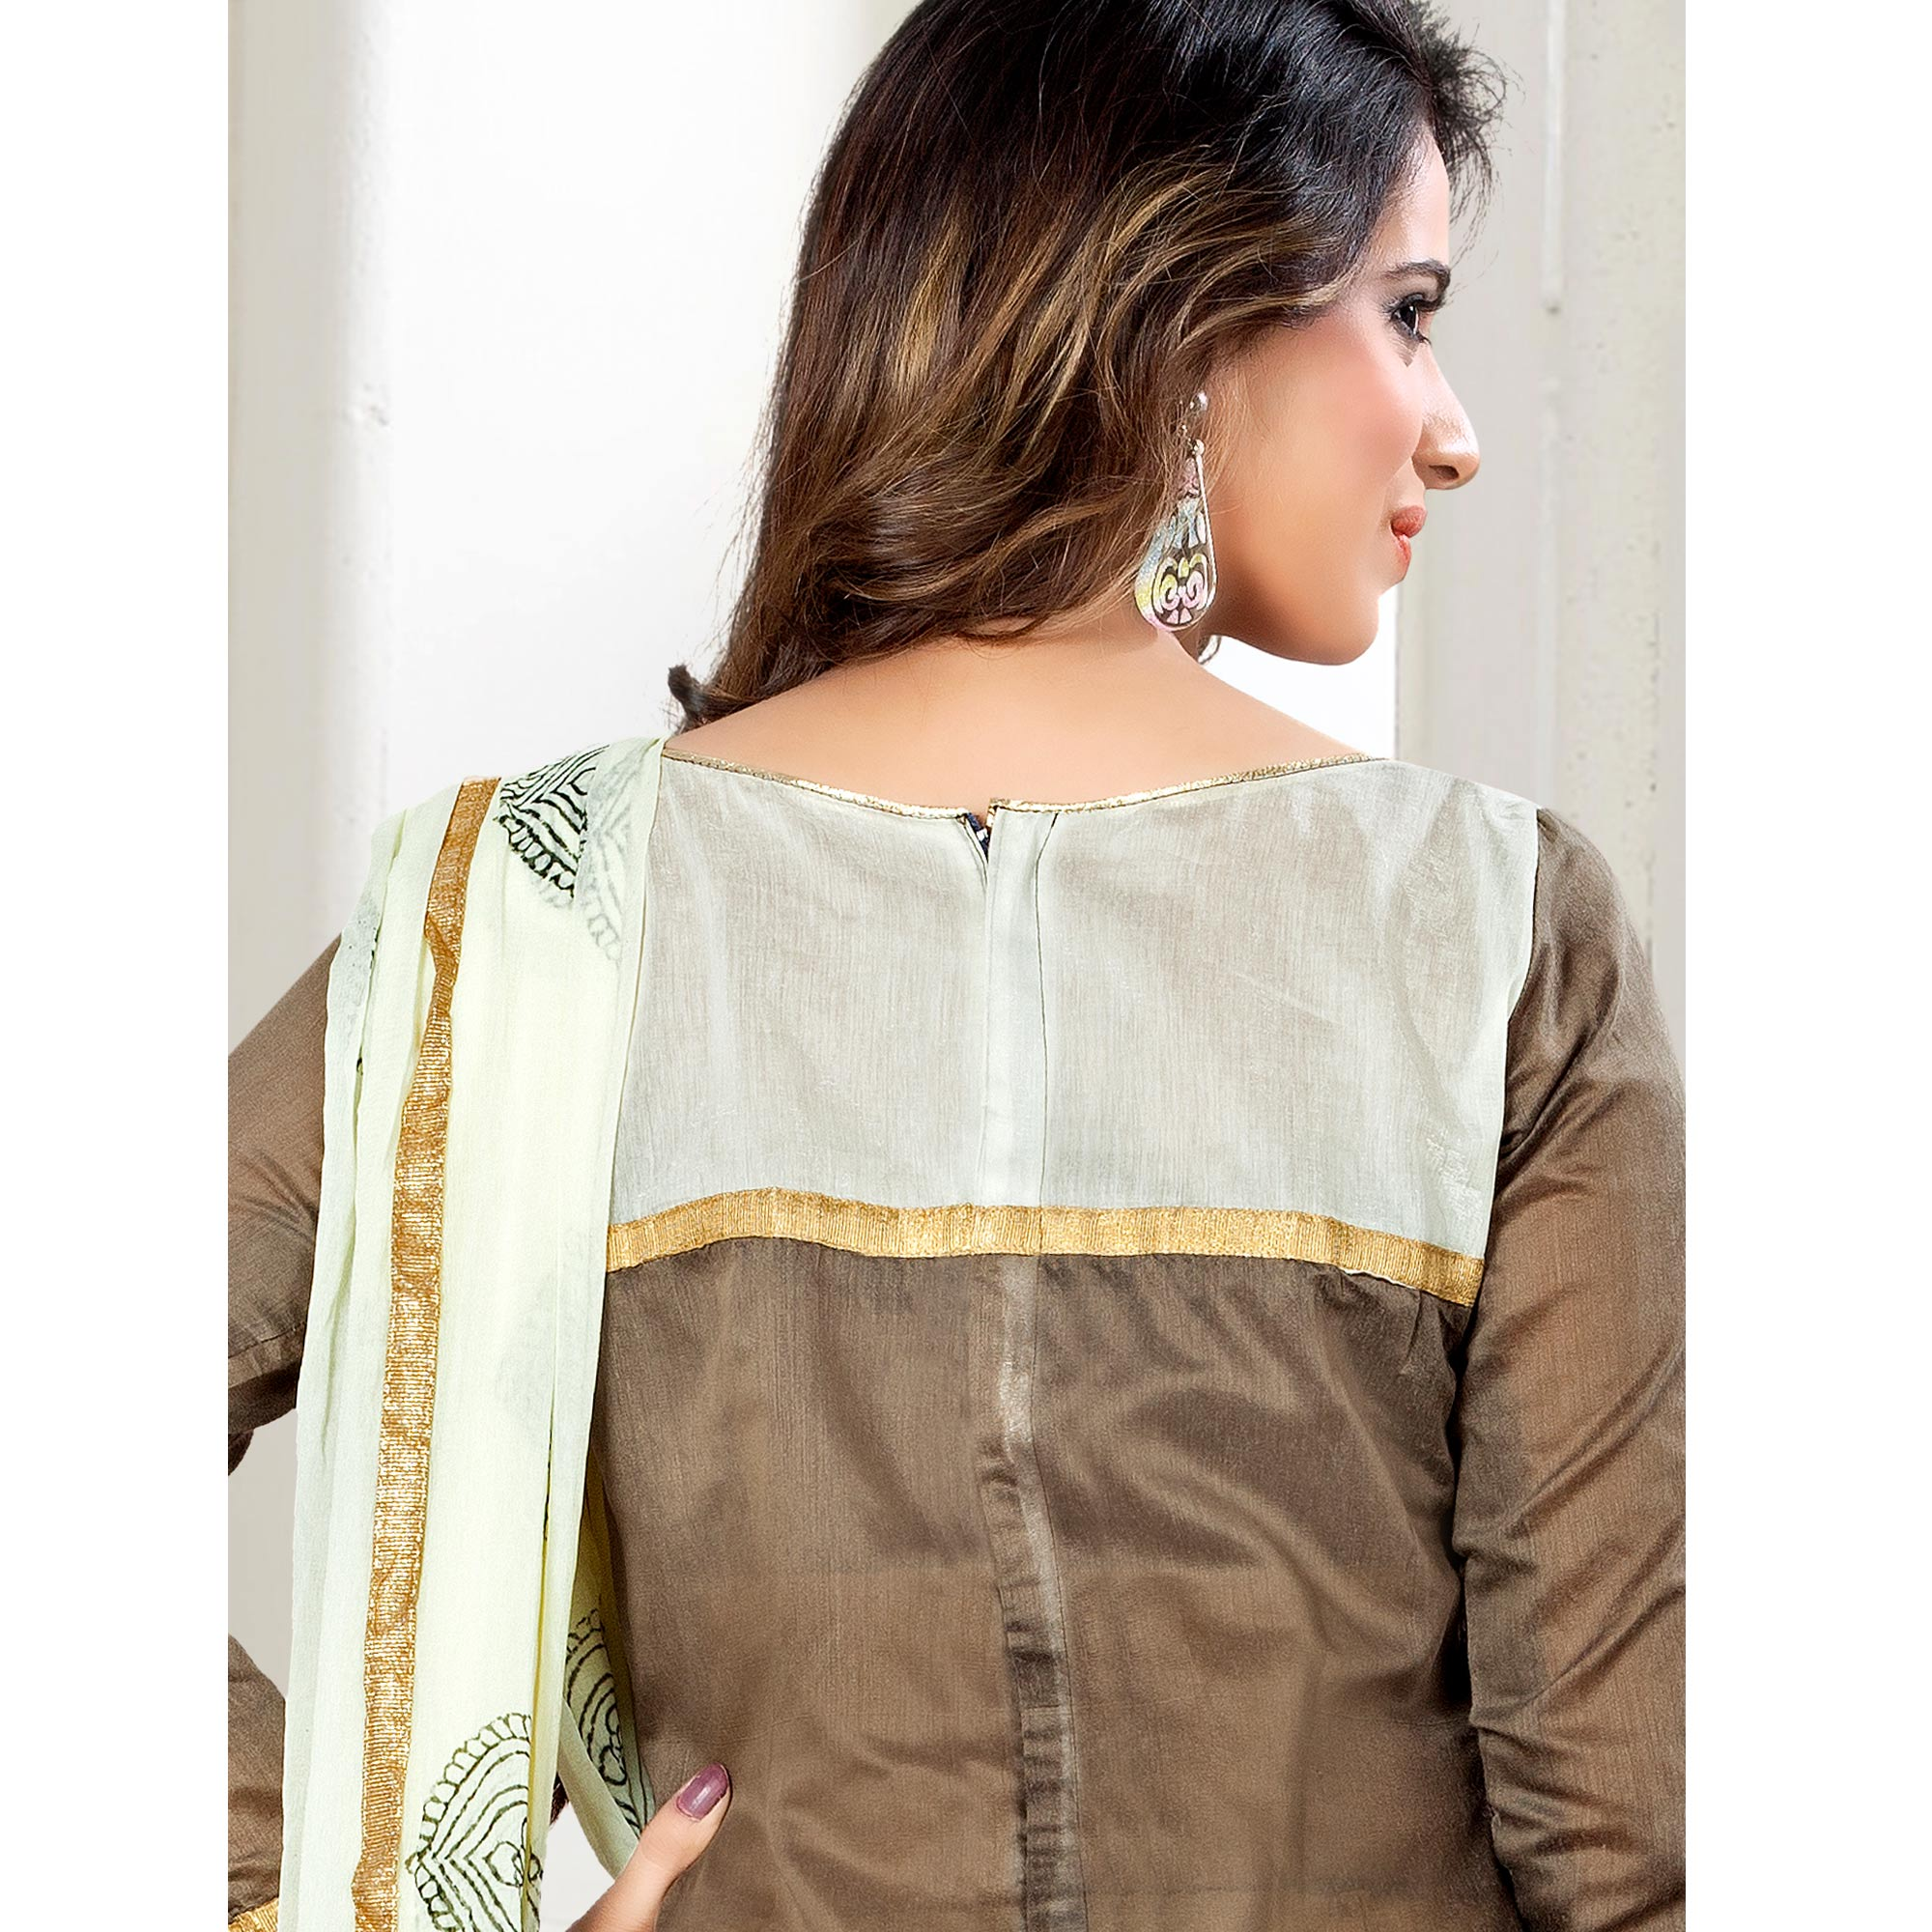 Groovy Brown Colored Party Wear Embroidered Chanderi Silk Dress Material